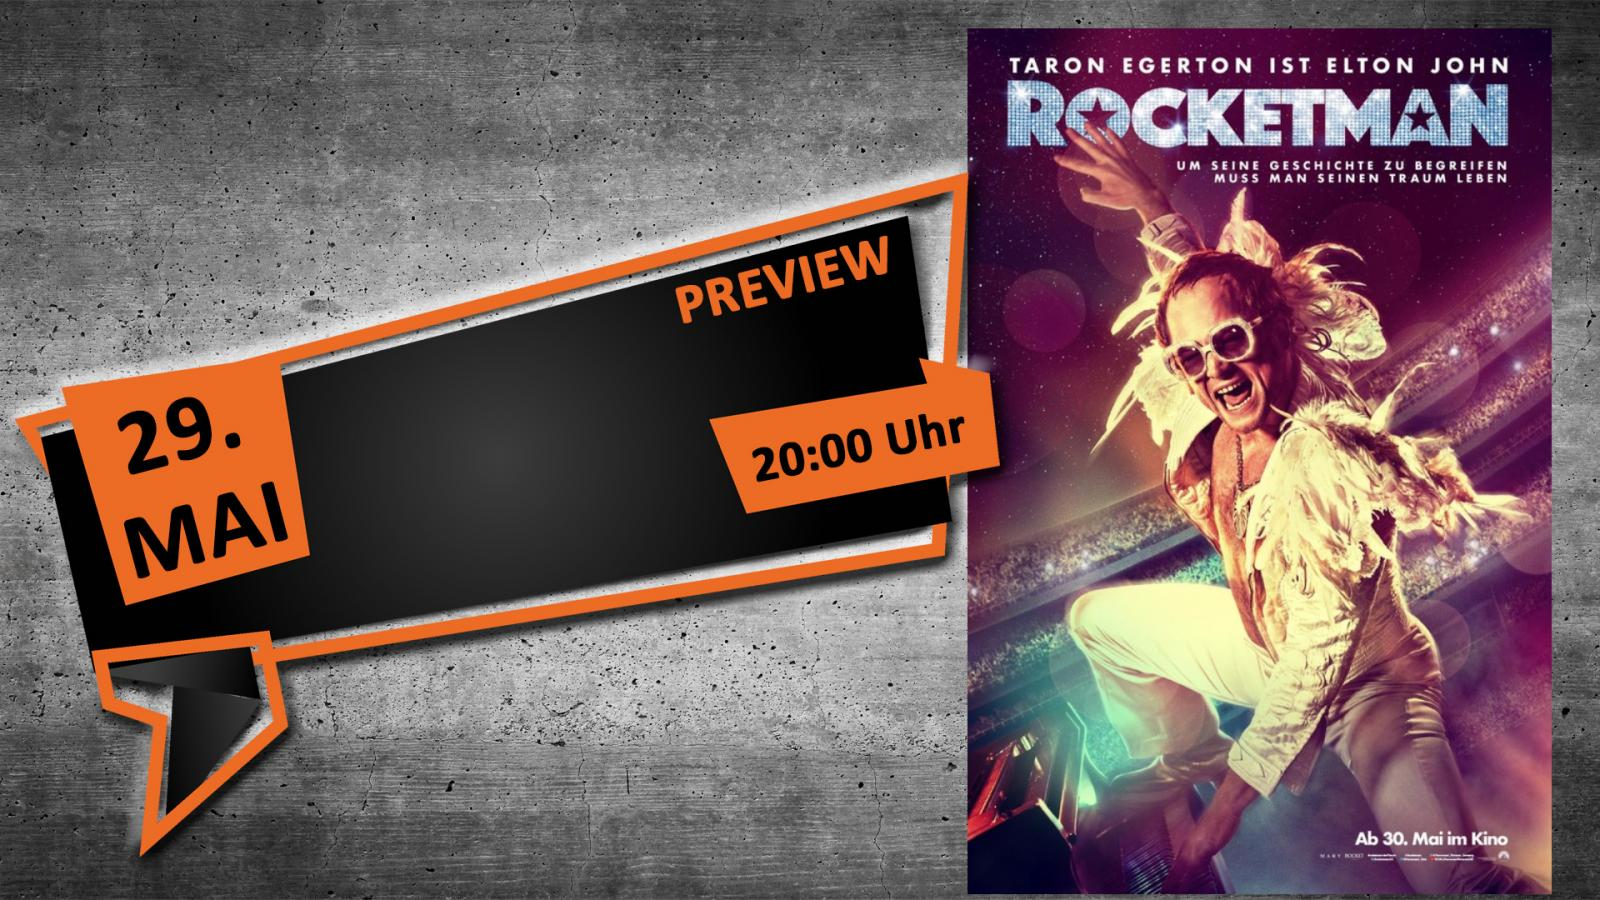 Preview: 29.05.2019 - 20:00 Uhr